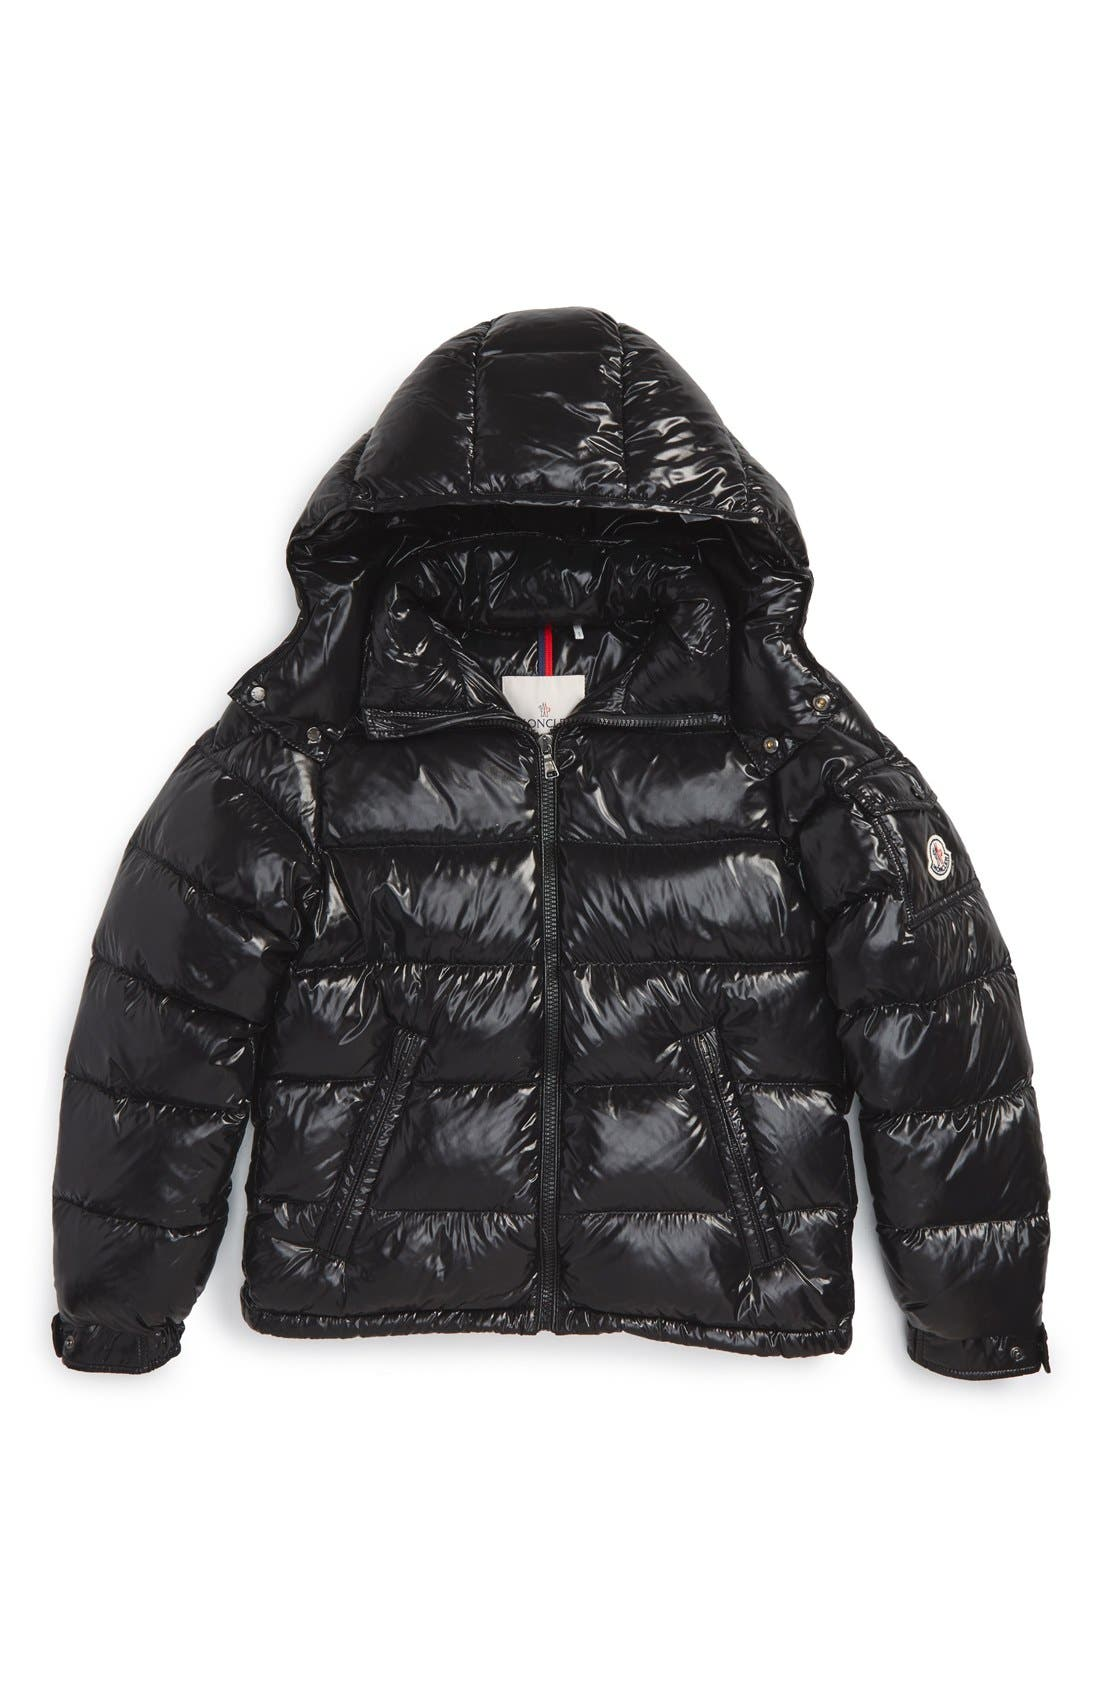 Main Image - Moncler 'Maya' Shiny Water Resistant Down Jacket (Toddler Boys, Little Boys & Big Boys)